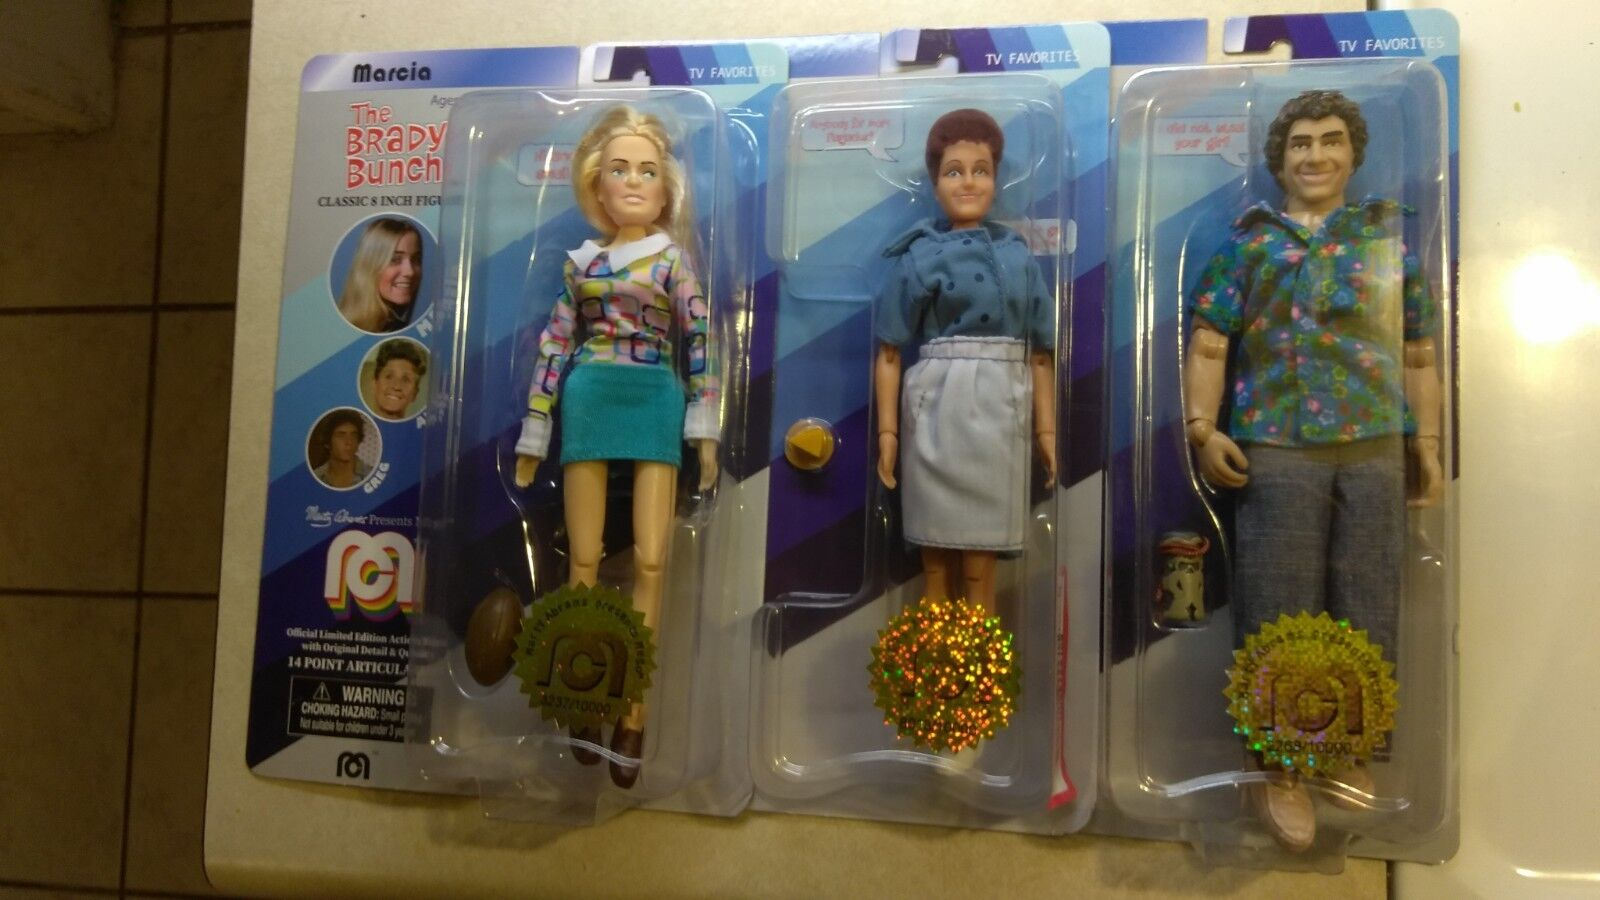 2018 mego action figure the brady bunch greg marshall alice limited edition viele   d